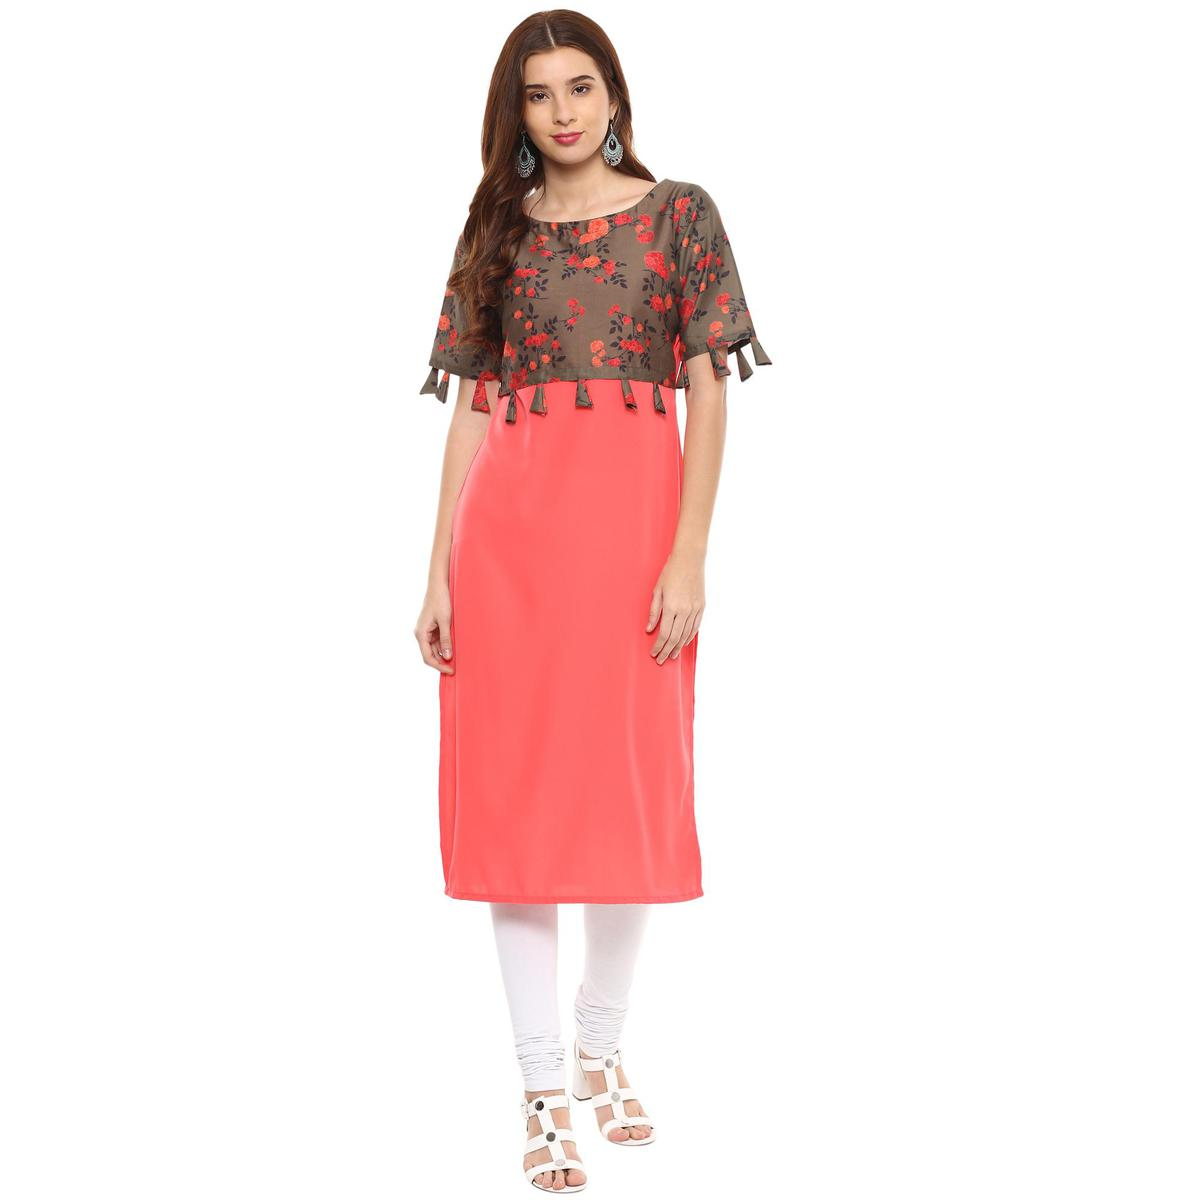 Ahalyaa - Pink Colored Casual Digital Printed Crepe-Polyester Kurti